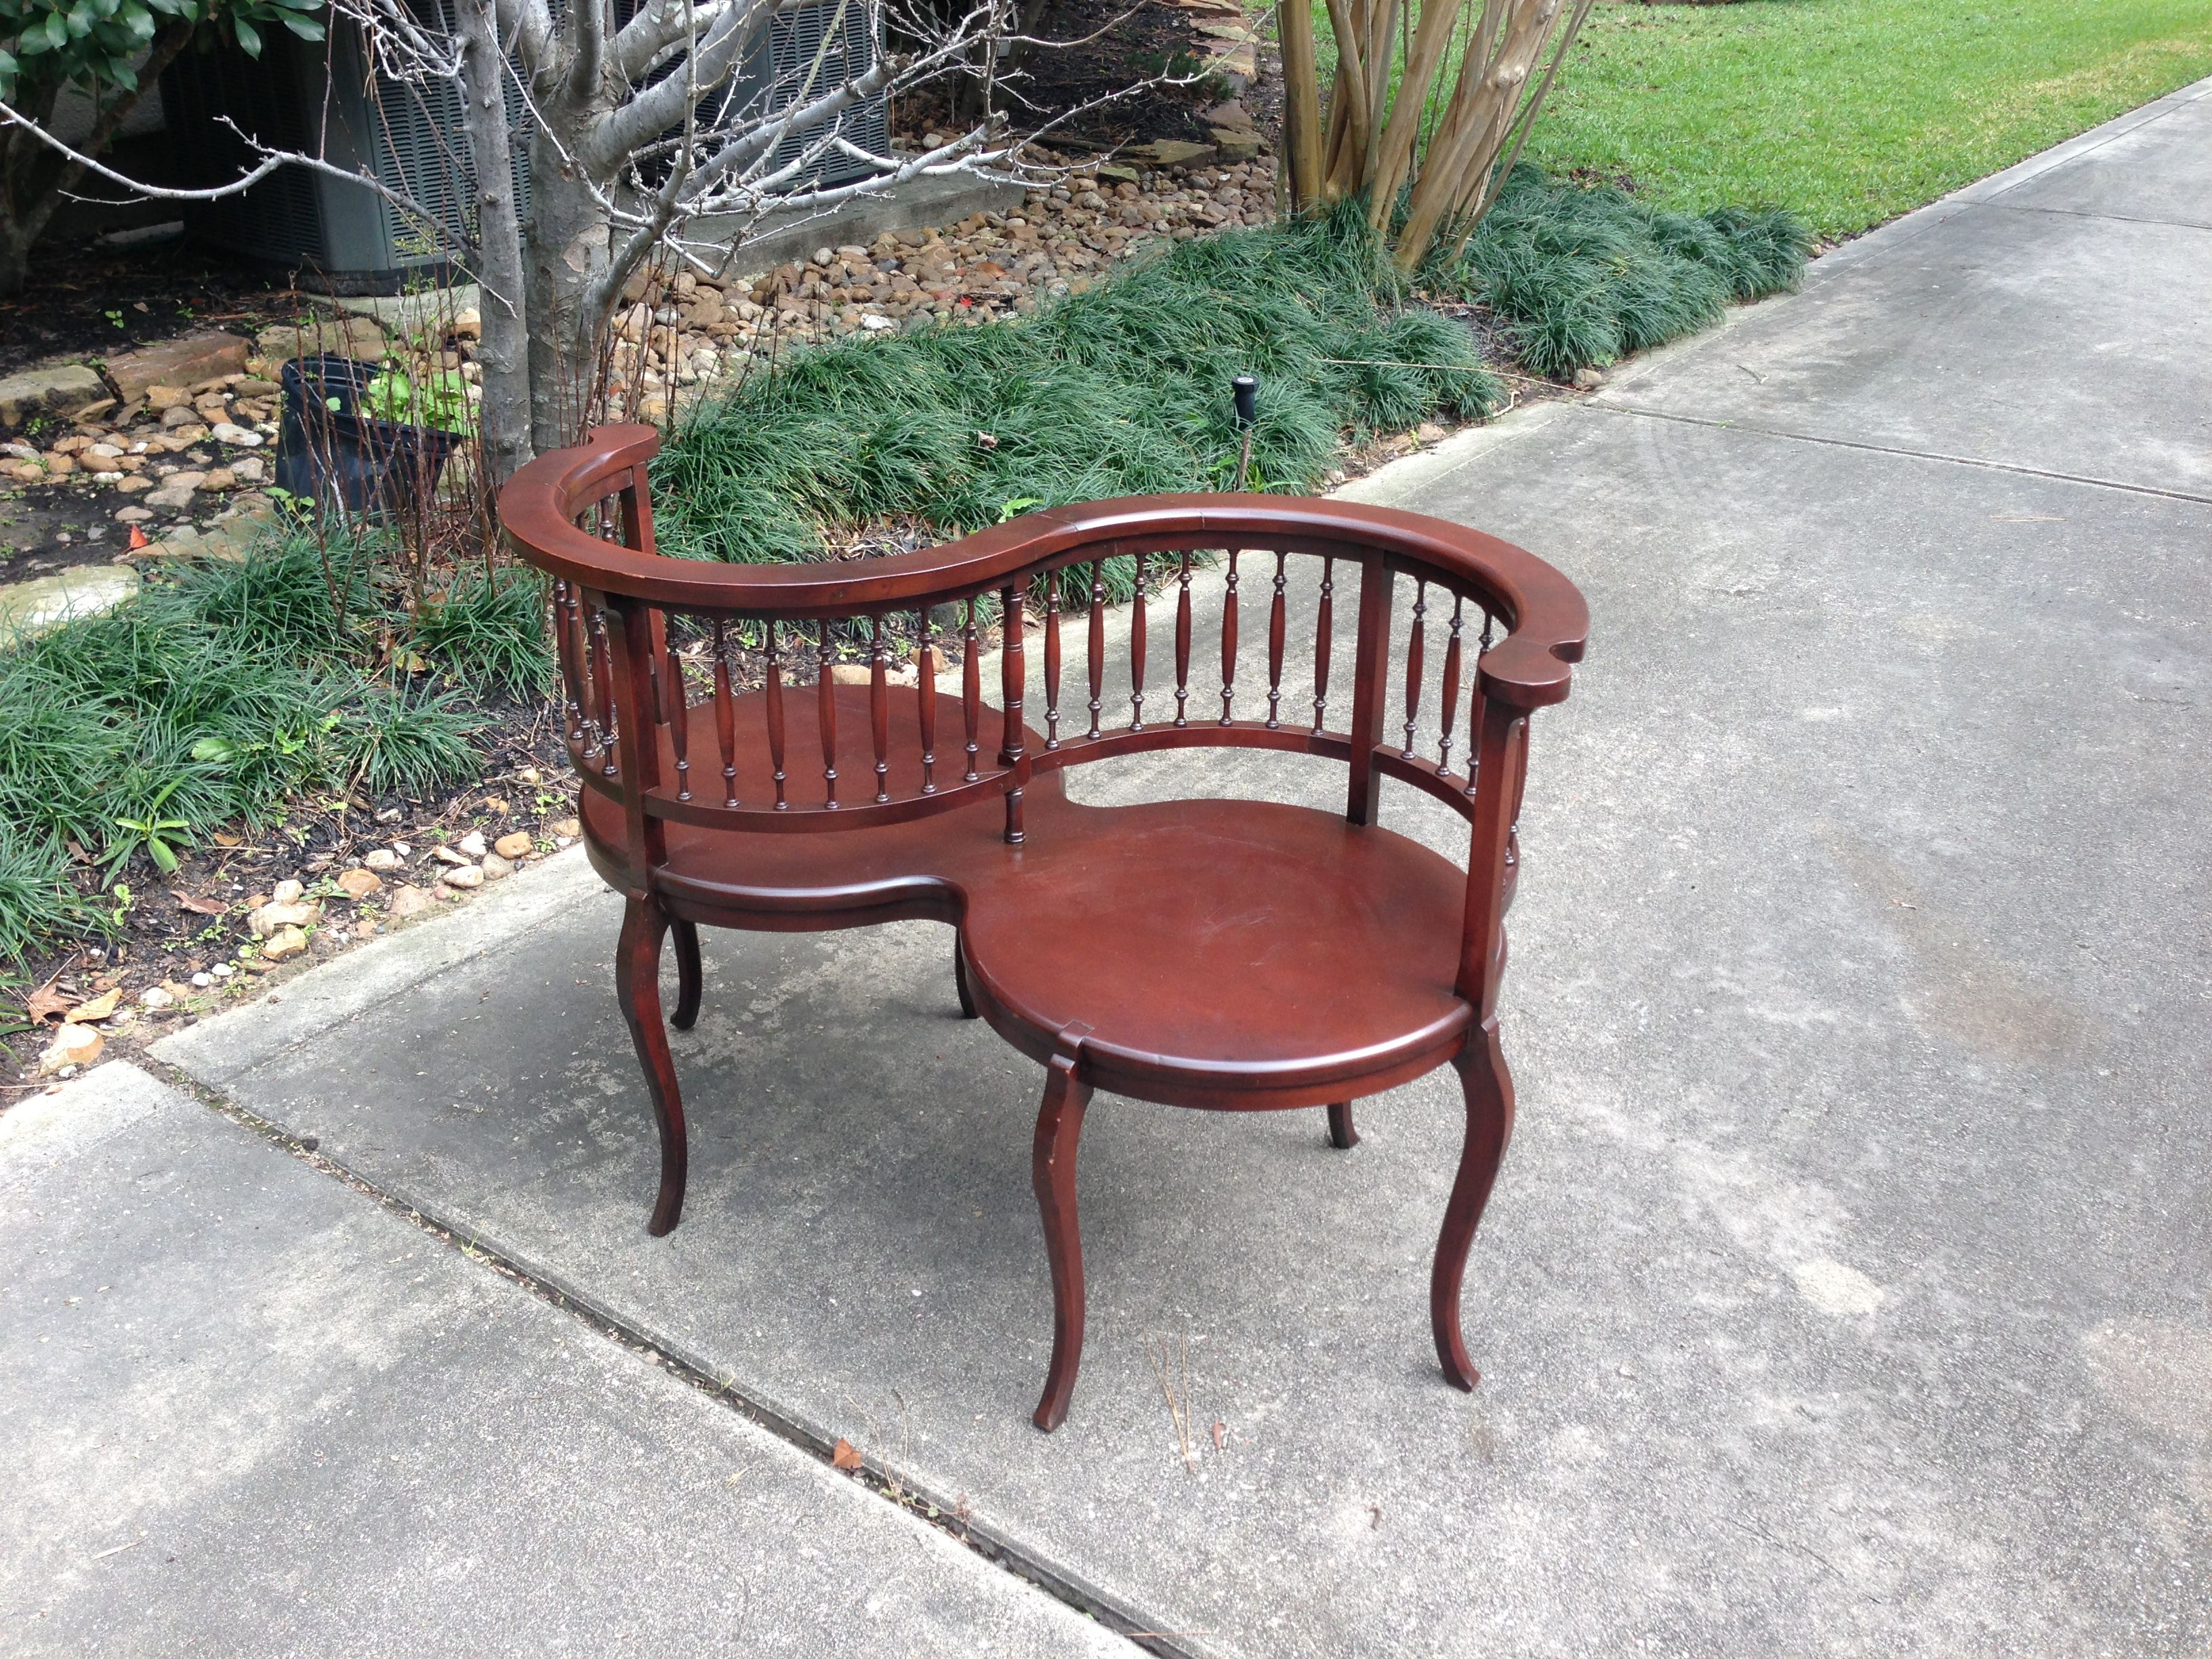 kissing chair for bridal or children's photos from rent some